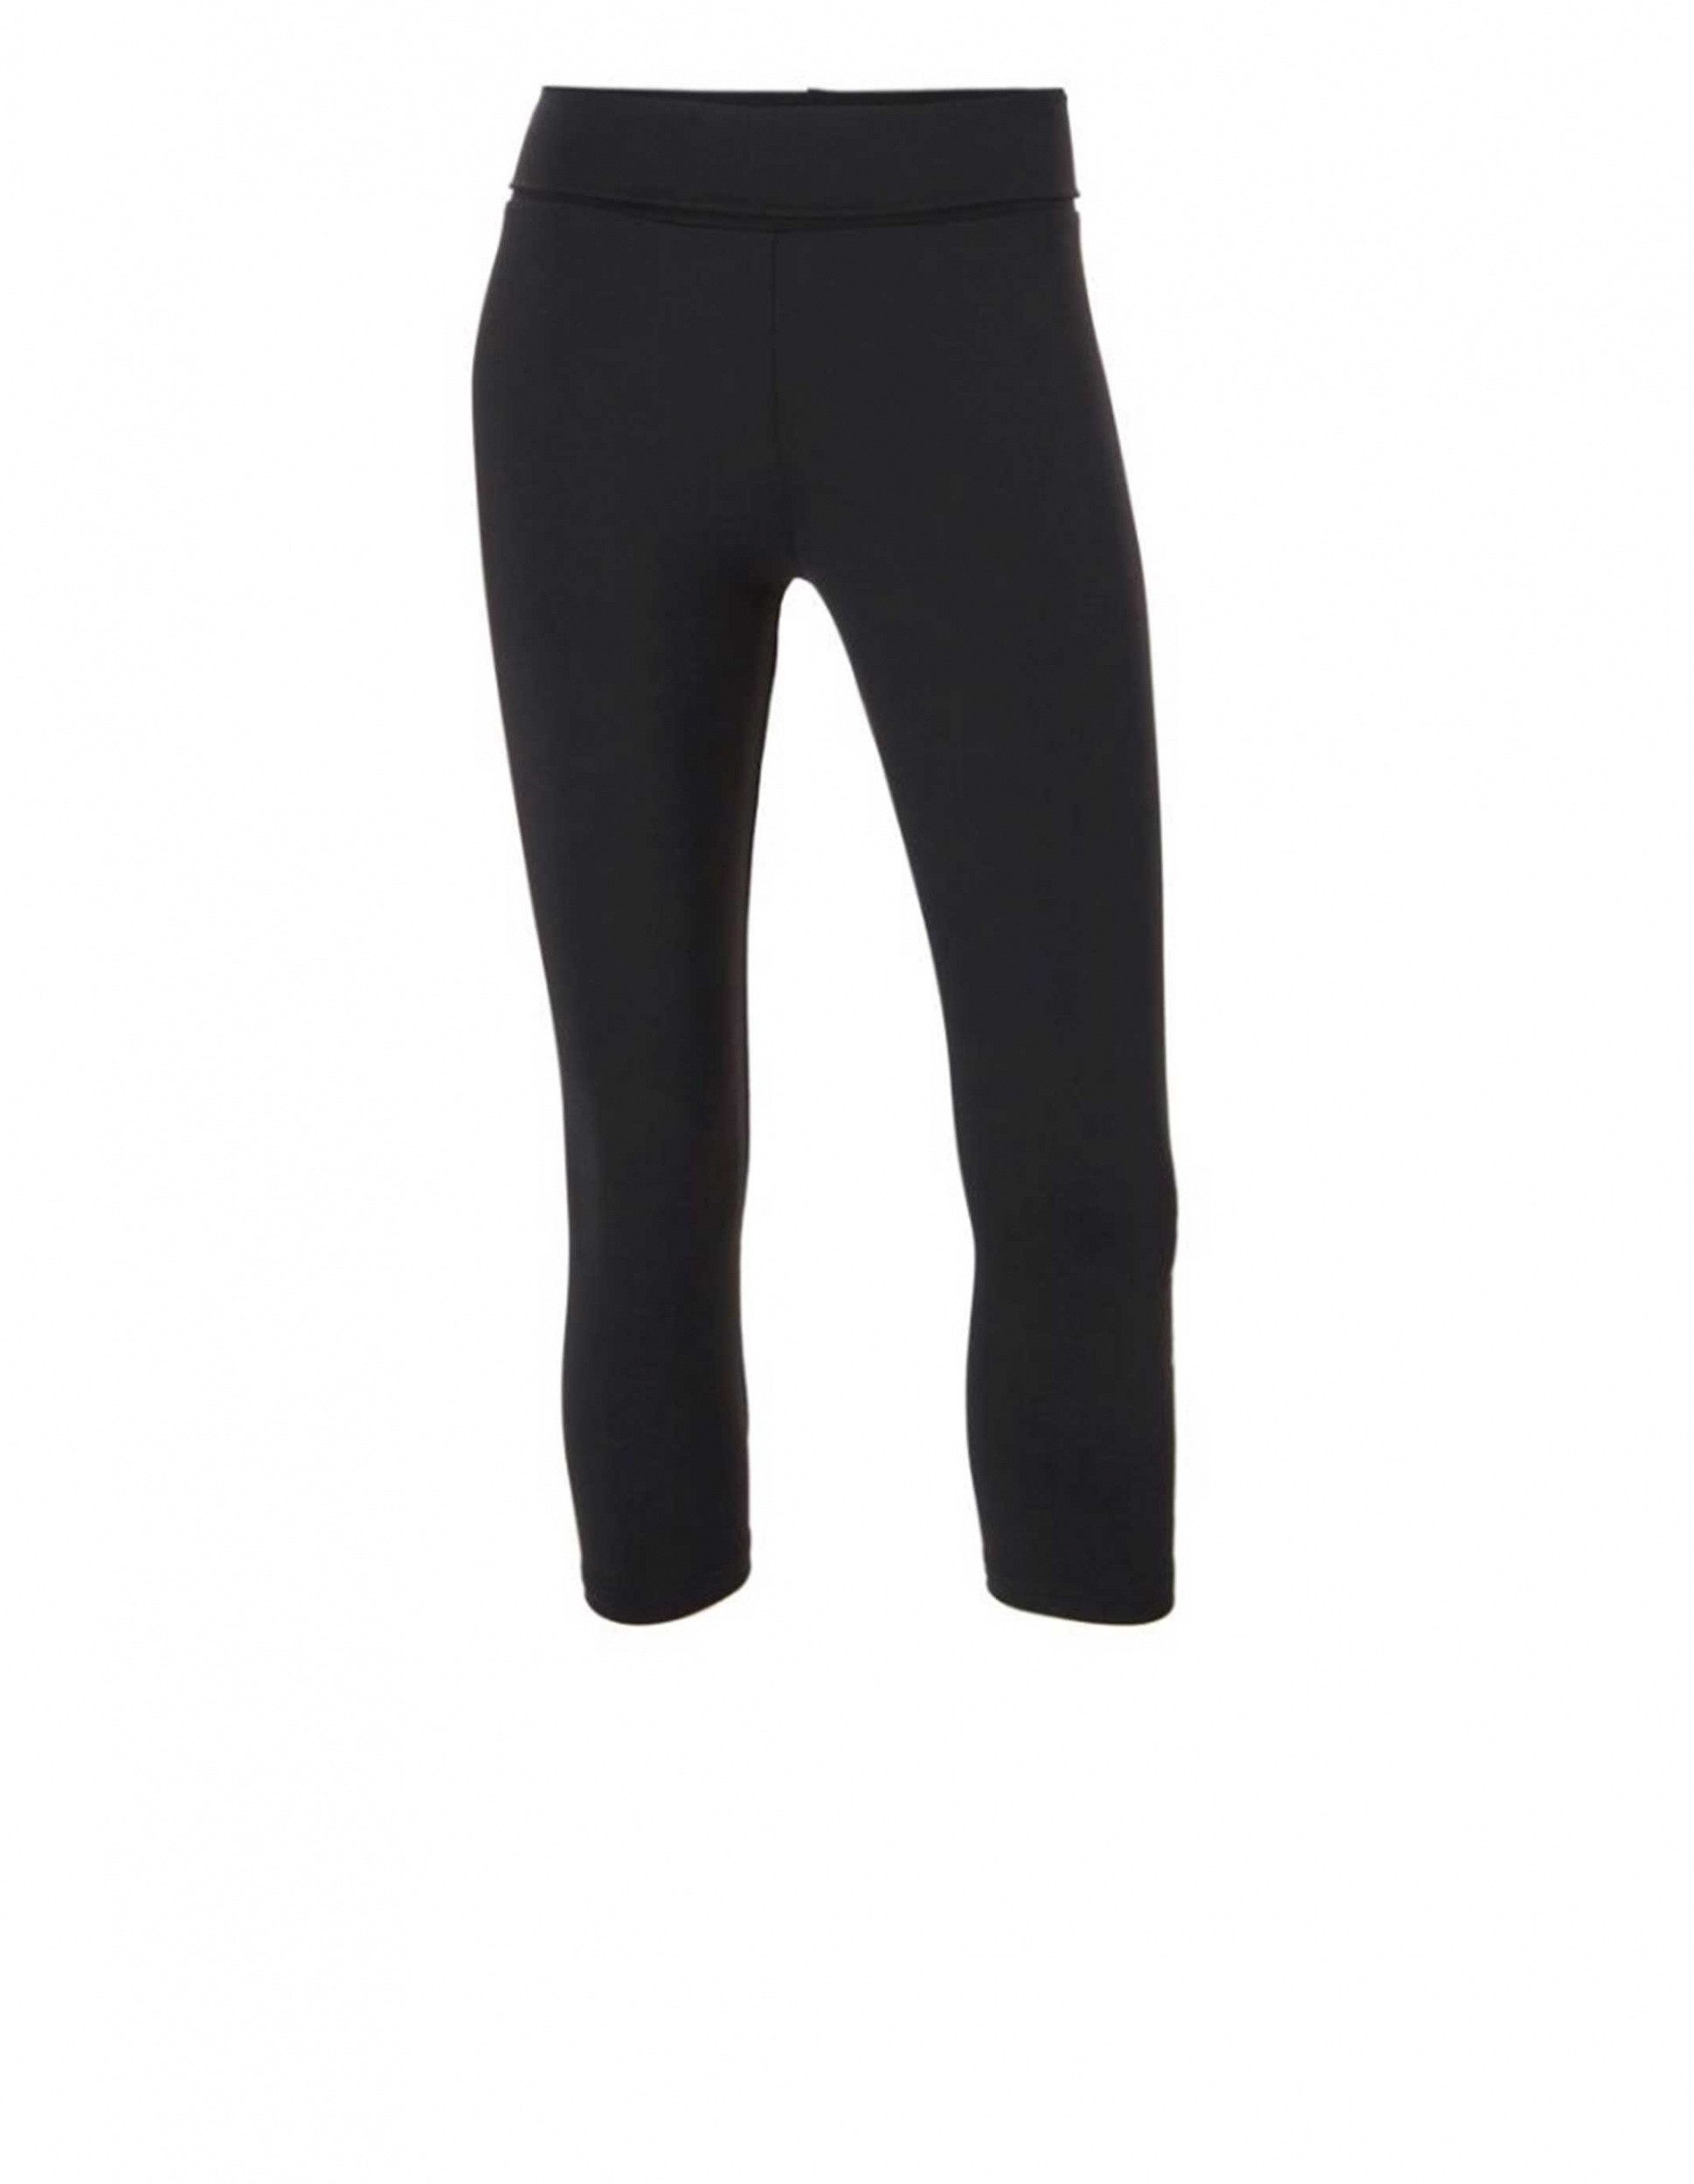 Capri Sportlegging.Papillon Capri Sportlegging Zwart Internet Sport Casuals